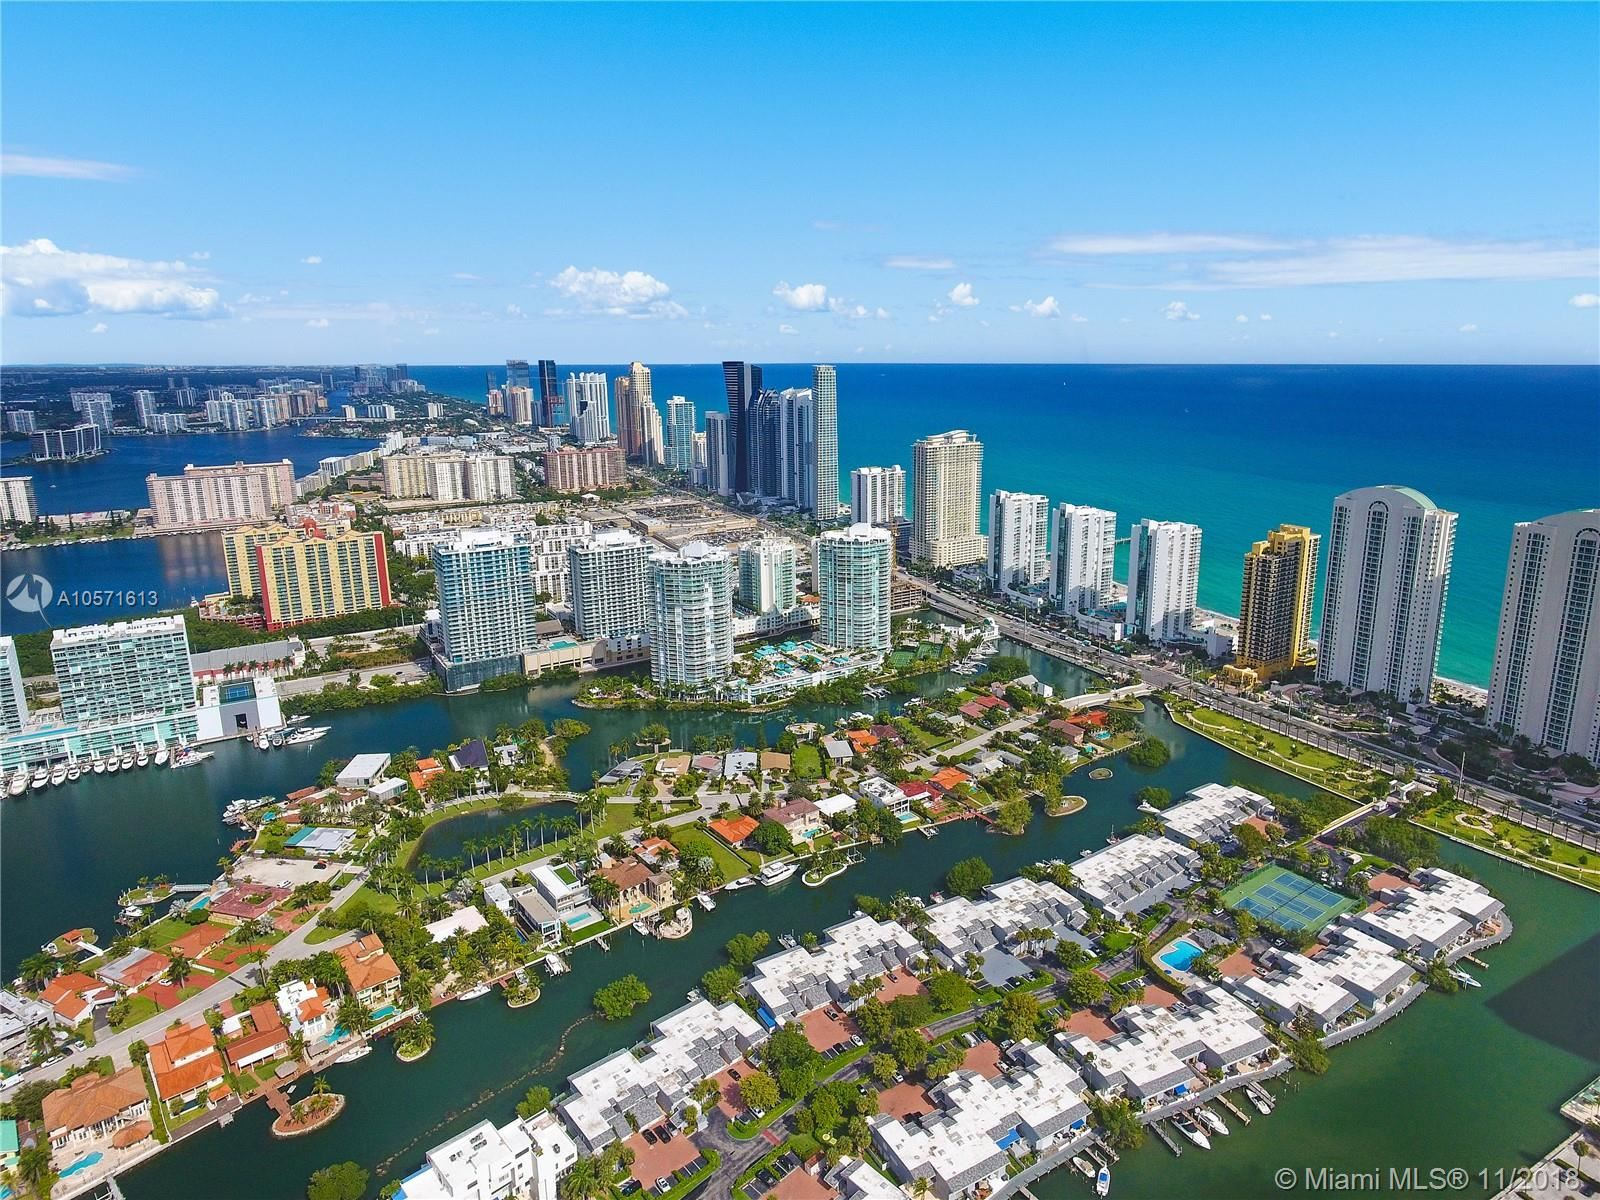 16500 COLLINS AVE #TH-8, Sunny Isles, FL 33160 - #: A10571613